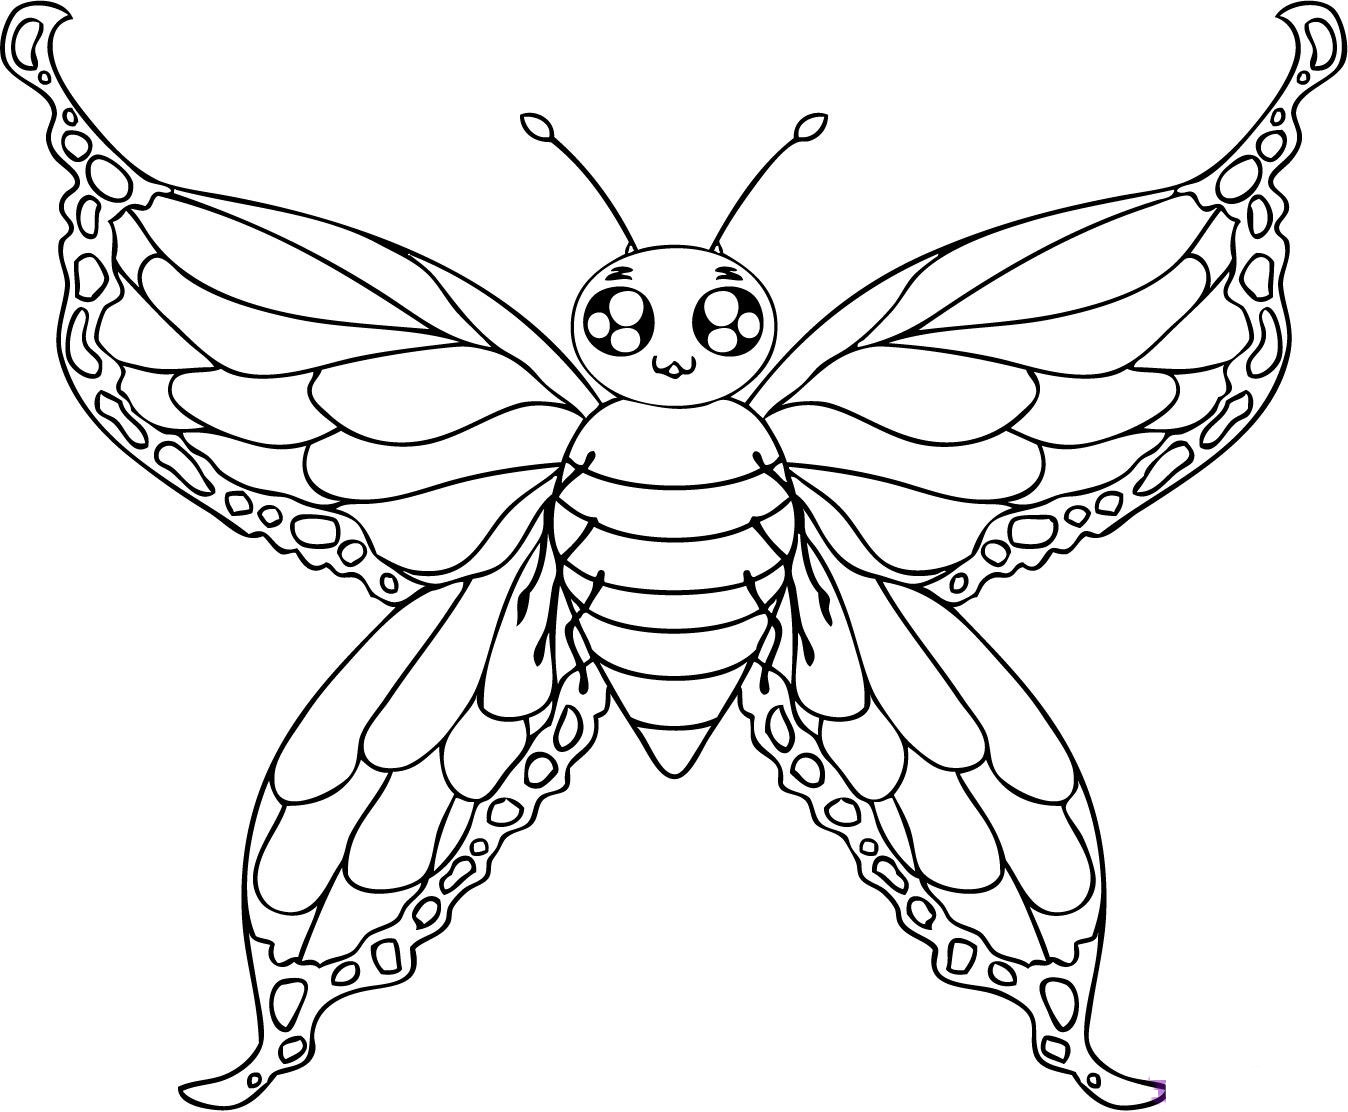 Butterfly coloring page printable - Zoes Butterfly Coloring Page